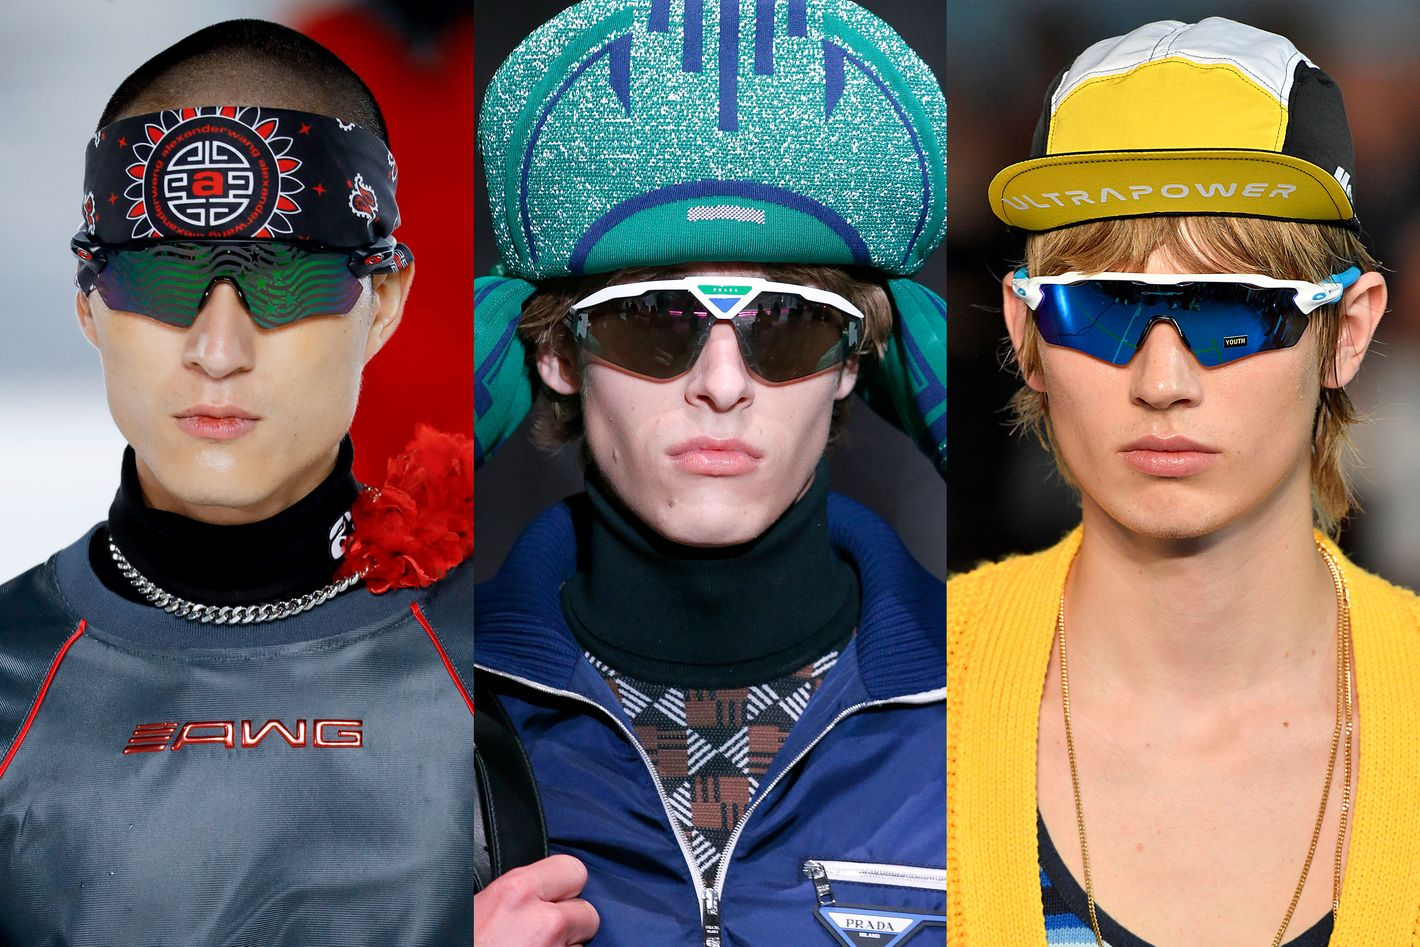 c8e1169a5a3 Spring 2019 Menswear Trends That Are Going to Be So Huge